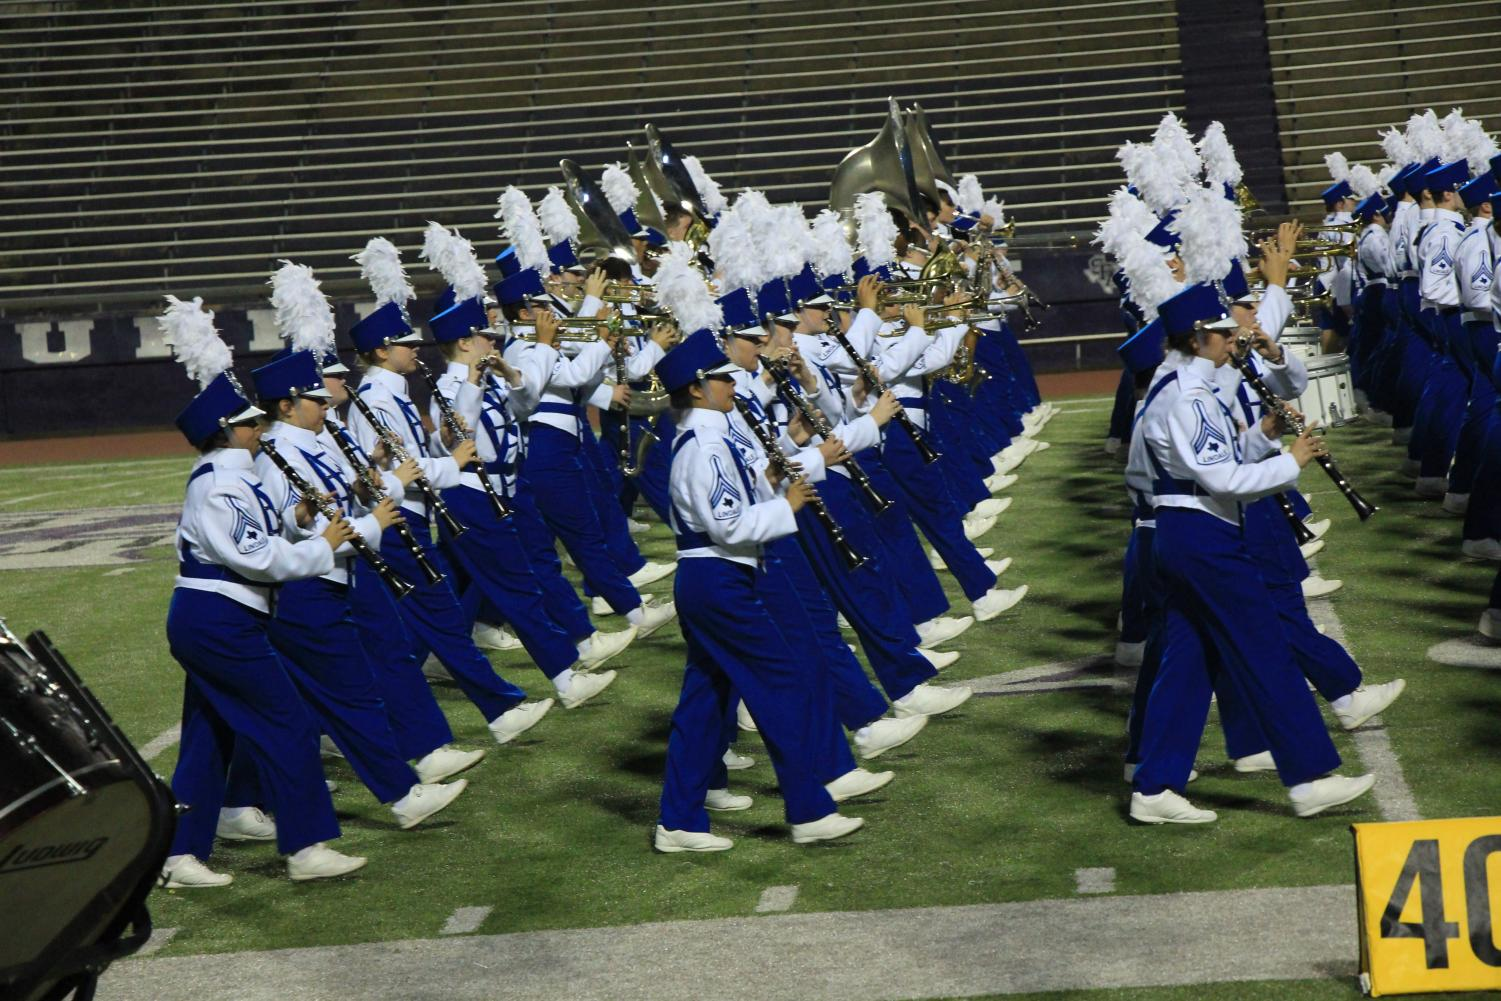 The Pride of Lindale performs their drill at the UIL Region Contest at Stephen F. Austin State University. The band received a first division rating for the 45th consecutive year.